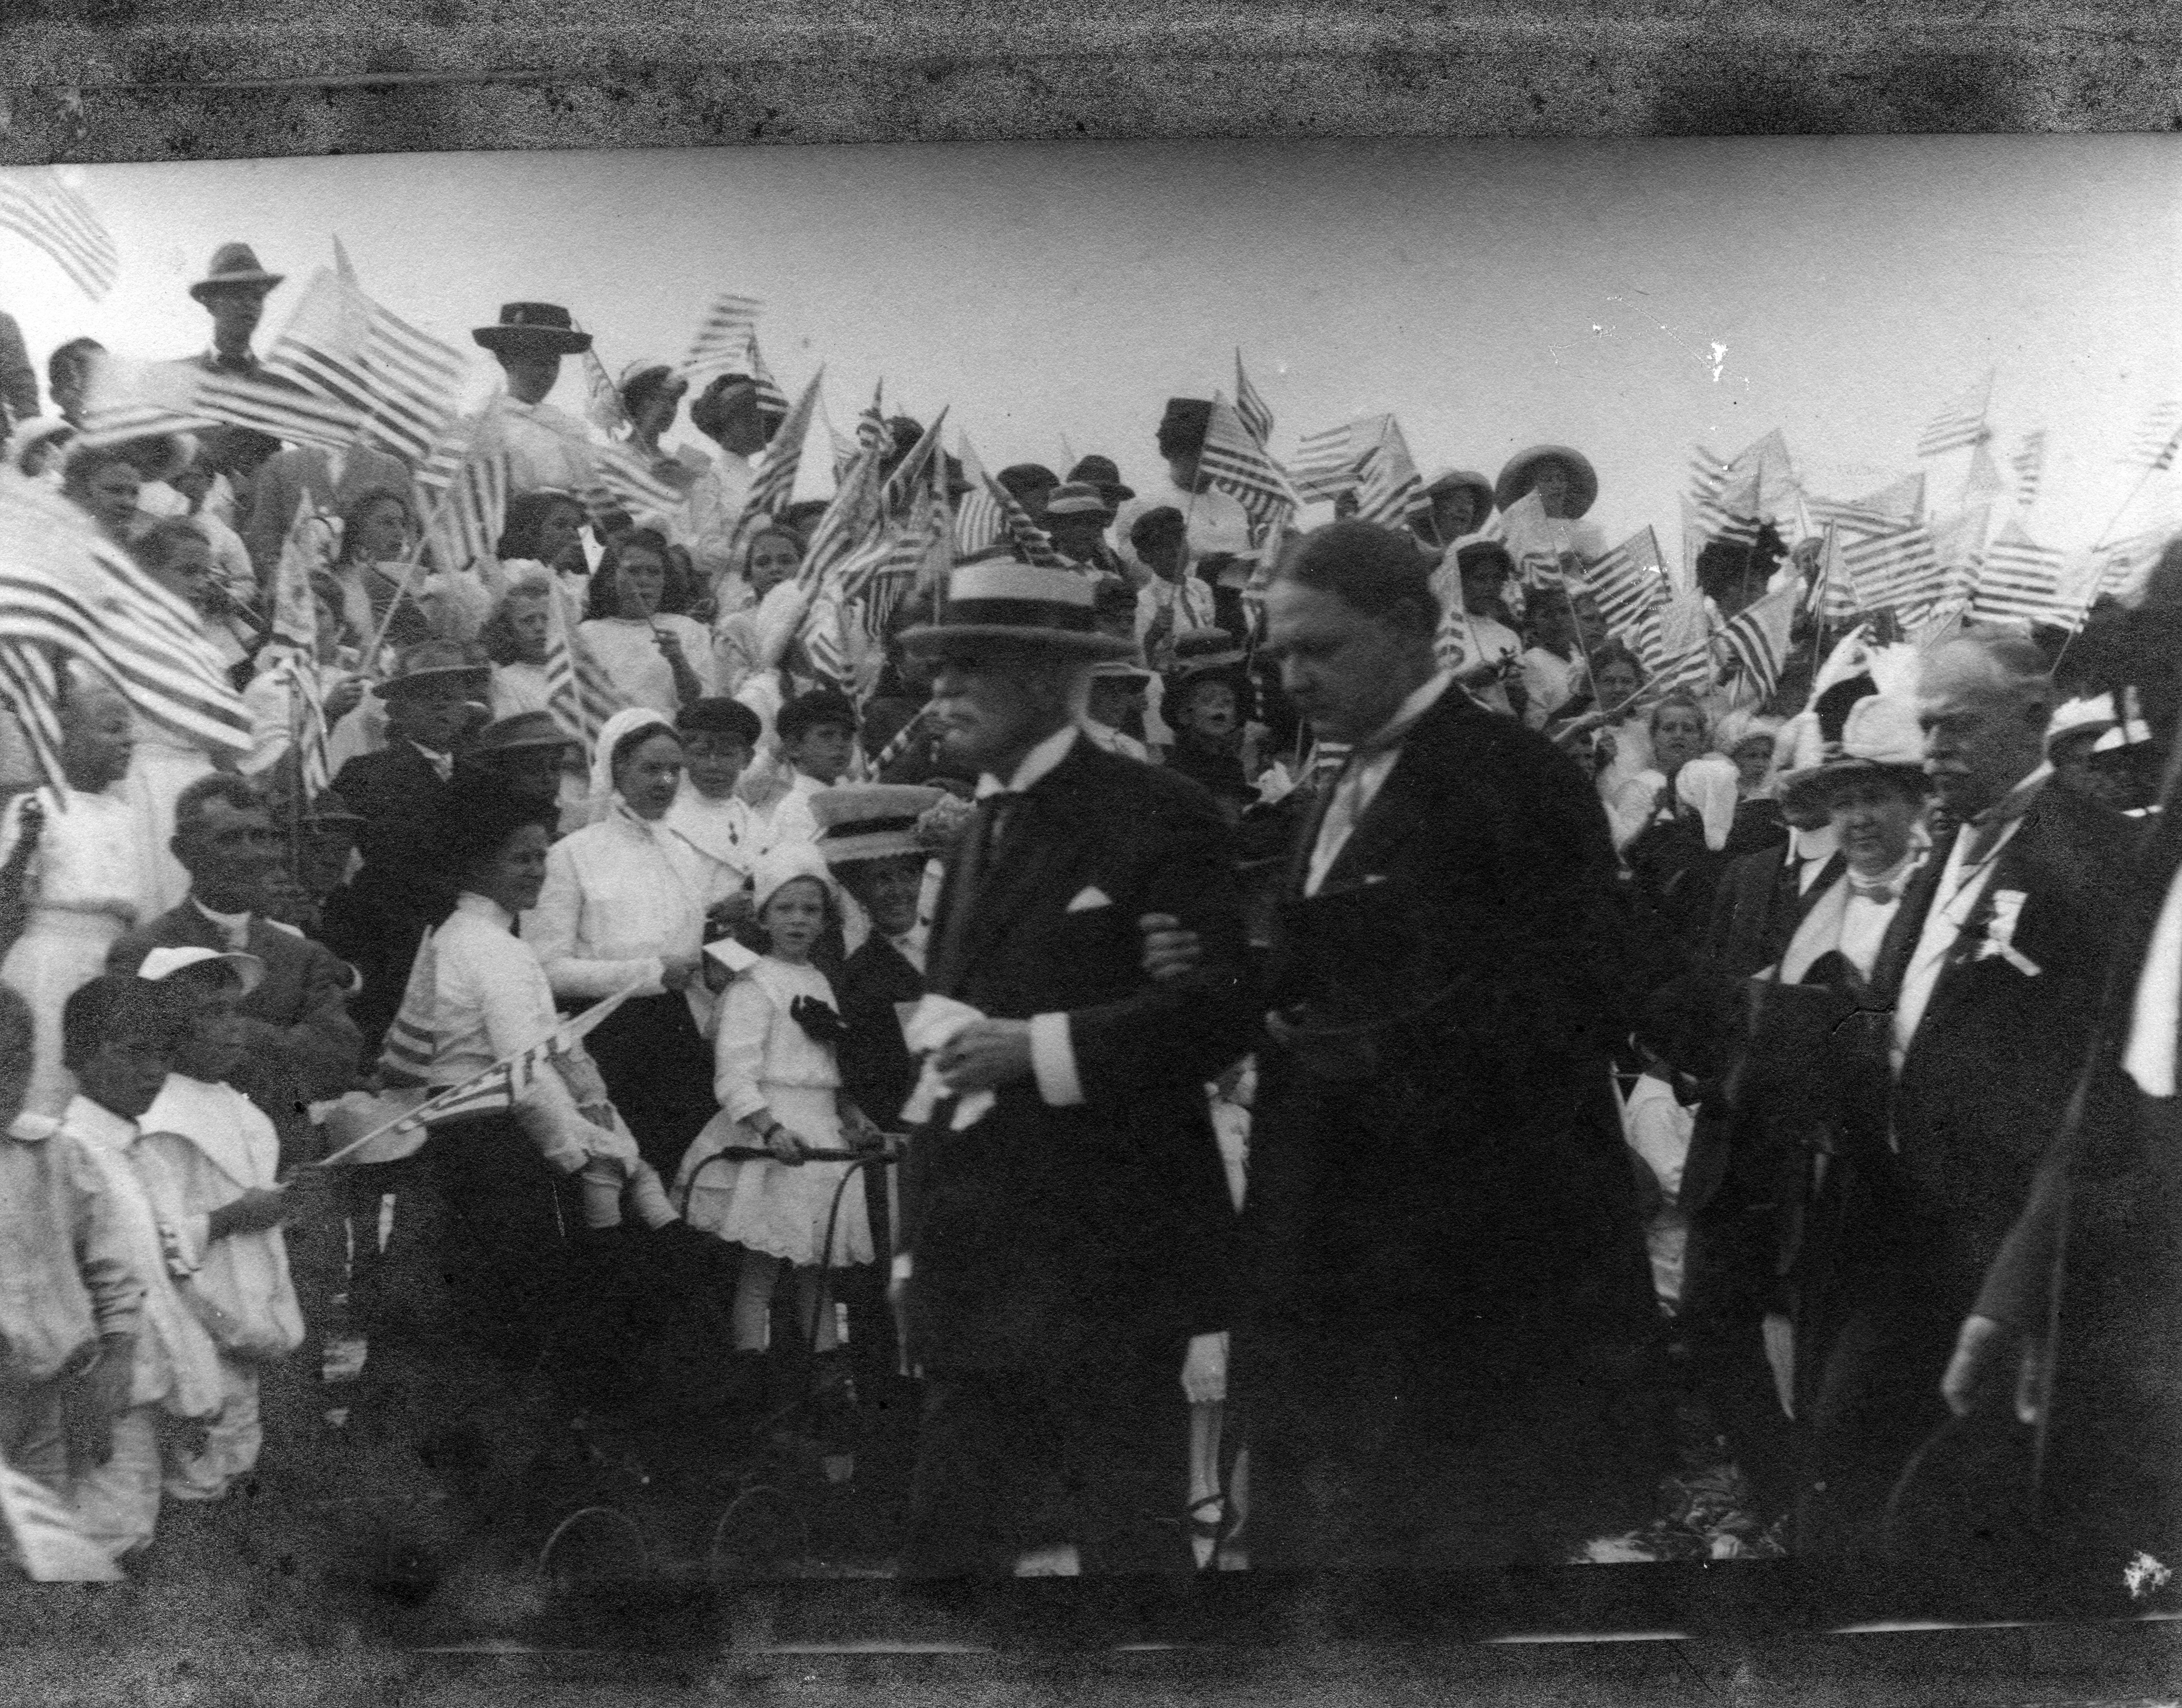 Florida East Coast Railway, Key West Extension. 1st Train Celebration, January 22, 1912. Henry M. Flagler, and Dr. Jos. N. Fogarty (Mayor). Gift of Mrs. W. R. Warren. Property of the Florida Keys Public Library.